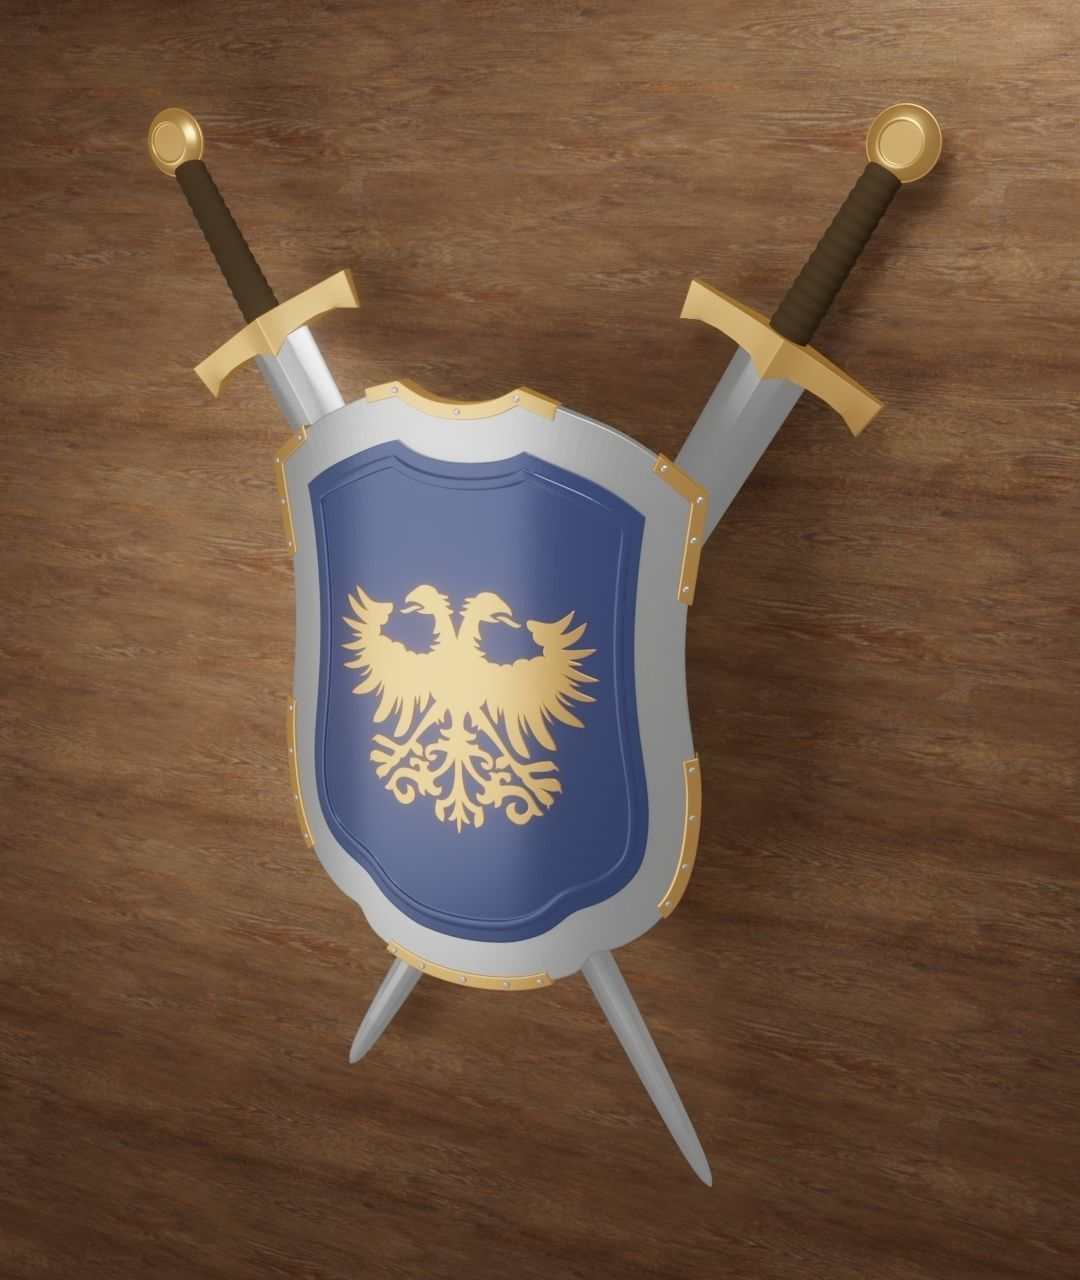 Medieval Shield with double headed eagle emblem